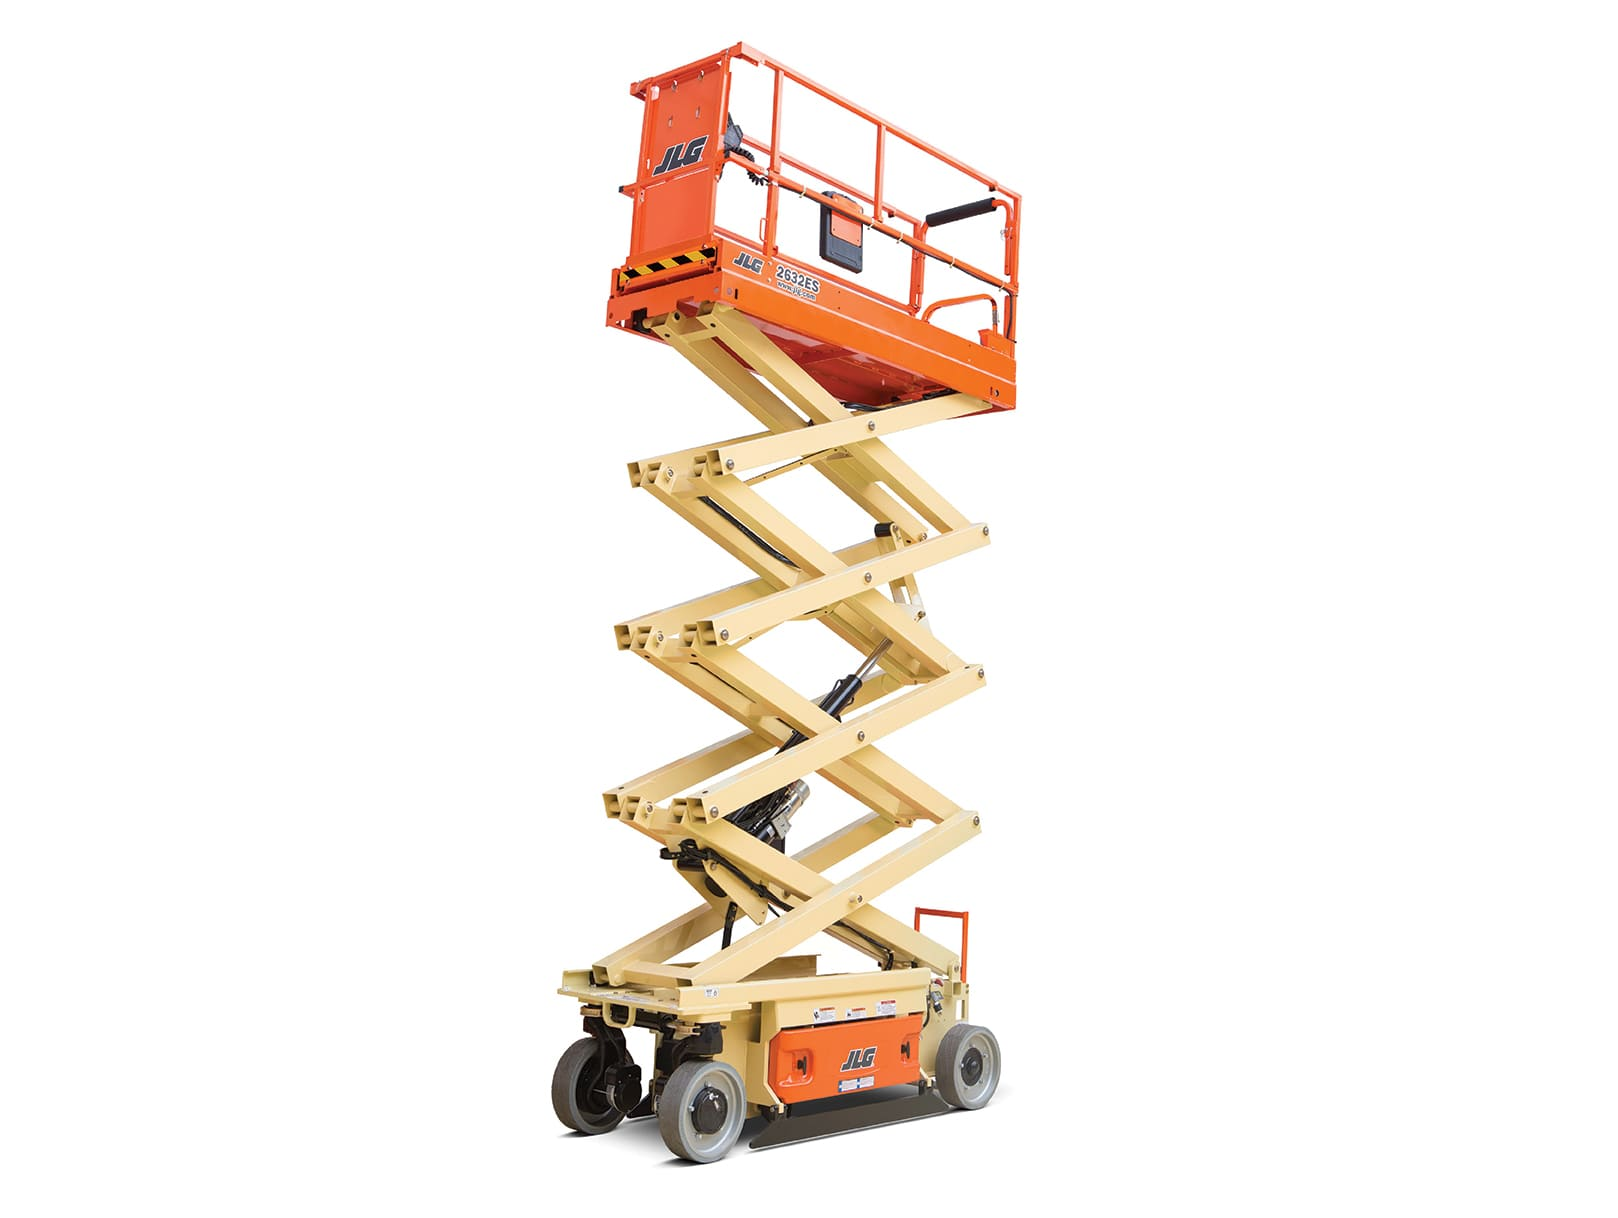 2632es Electric Scissor Lift Jlg